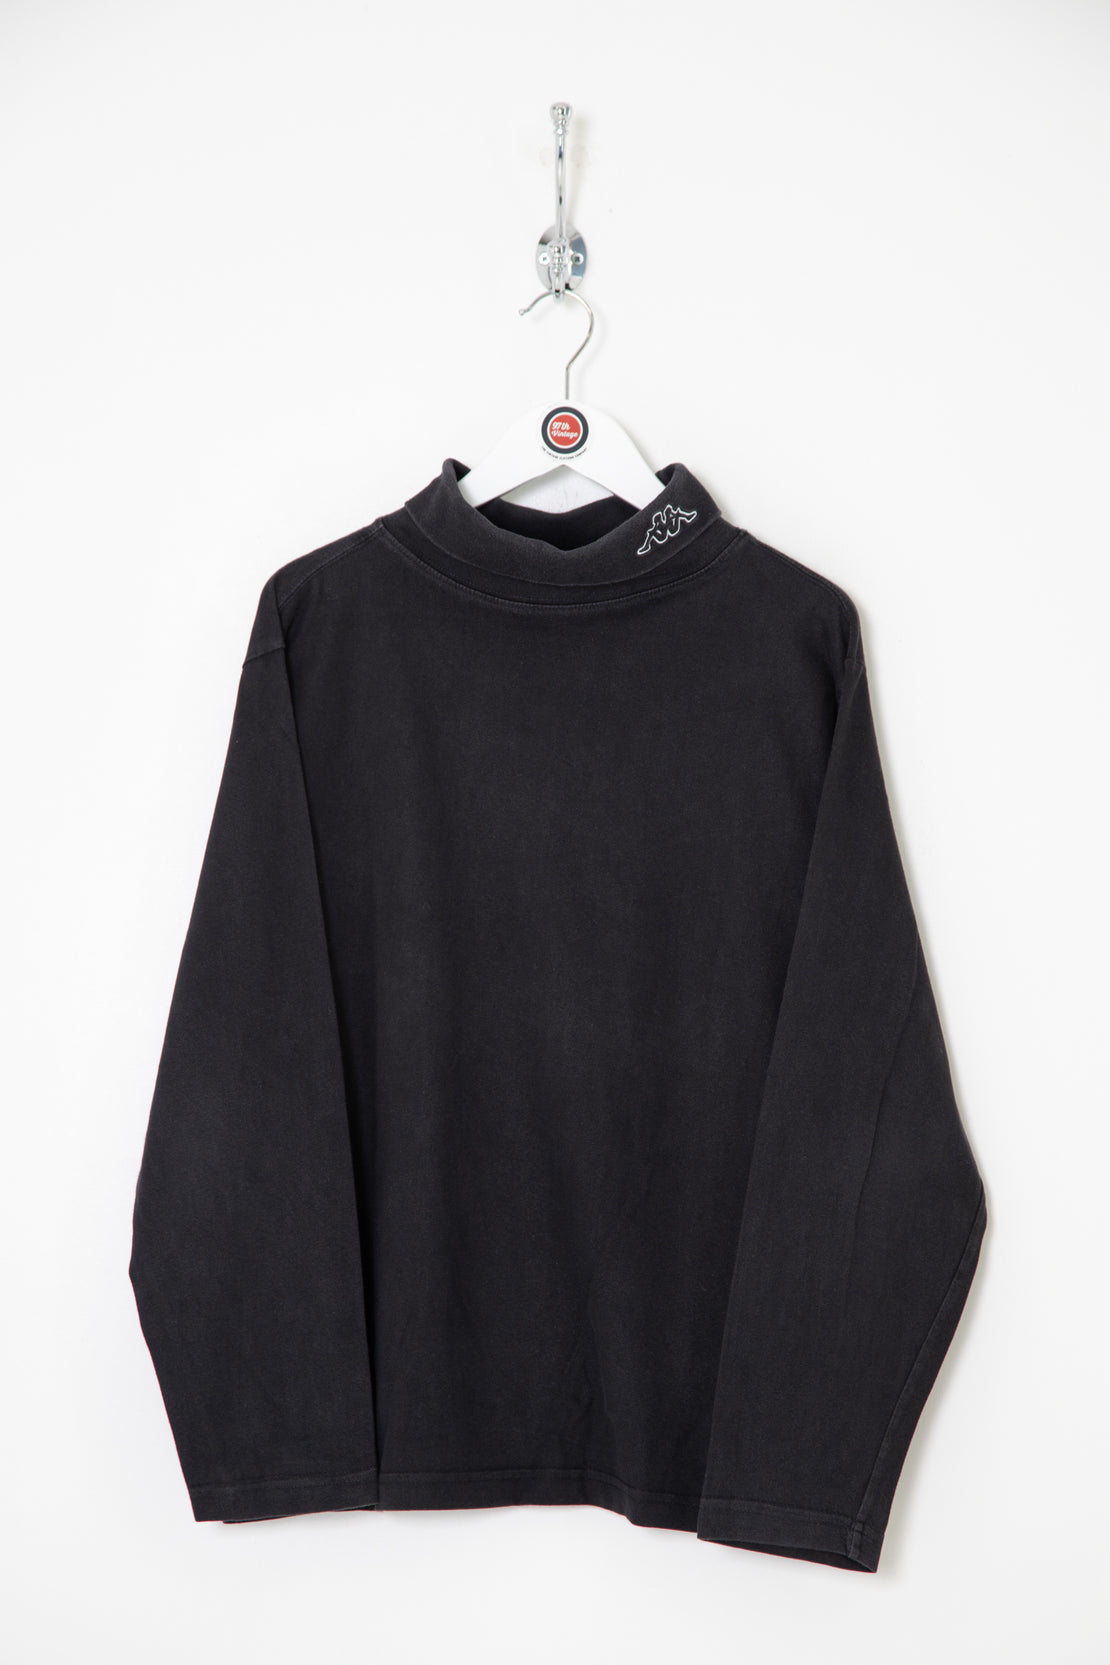 Kappa Roll Neck Sweatshirt (S)